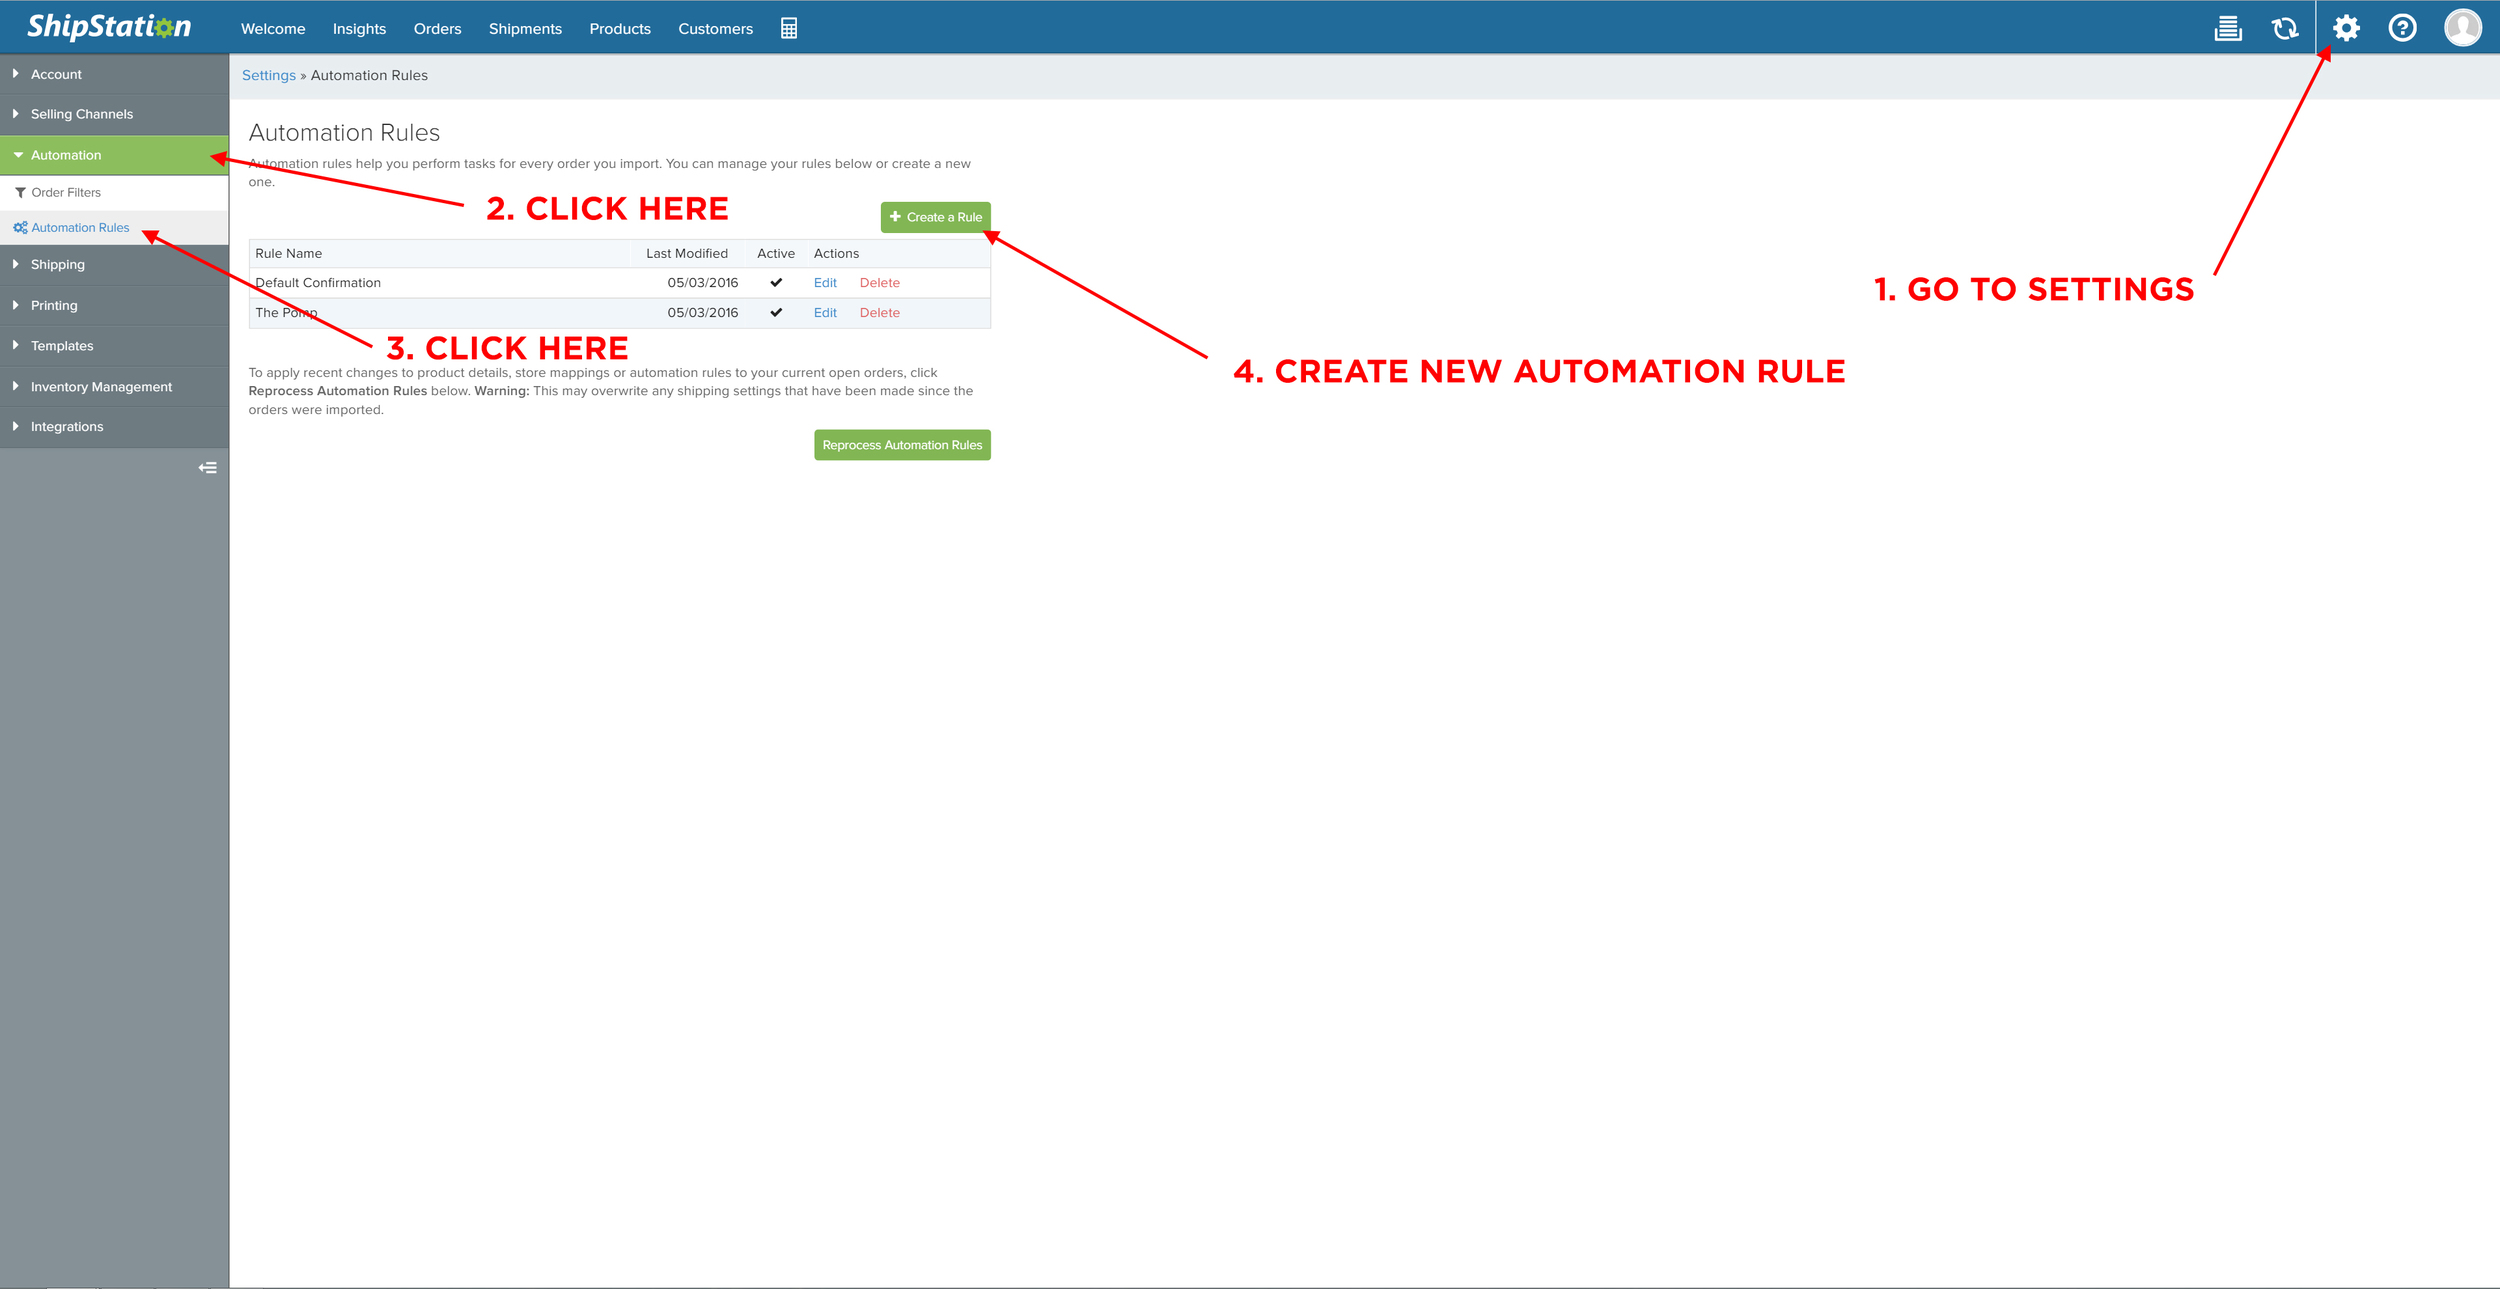 Create a new automation rule that will tag orders with multiple line items and apply necessary modifications to process.